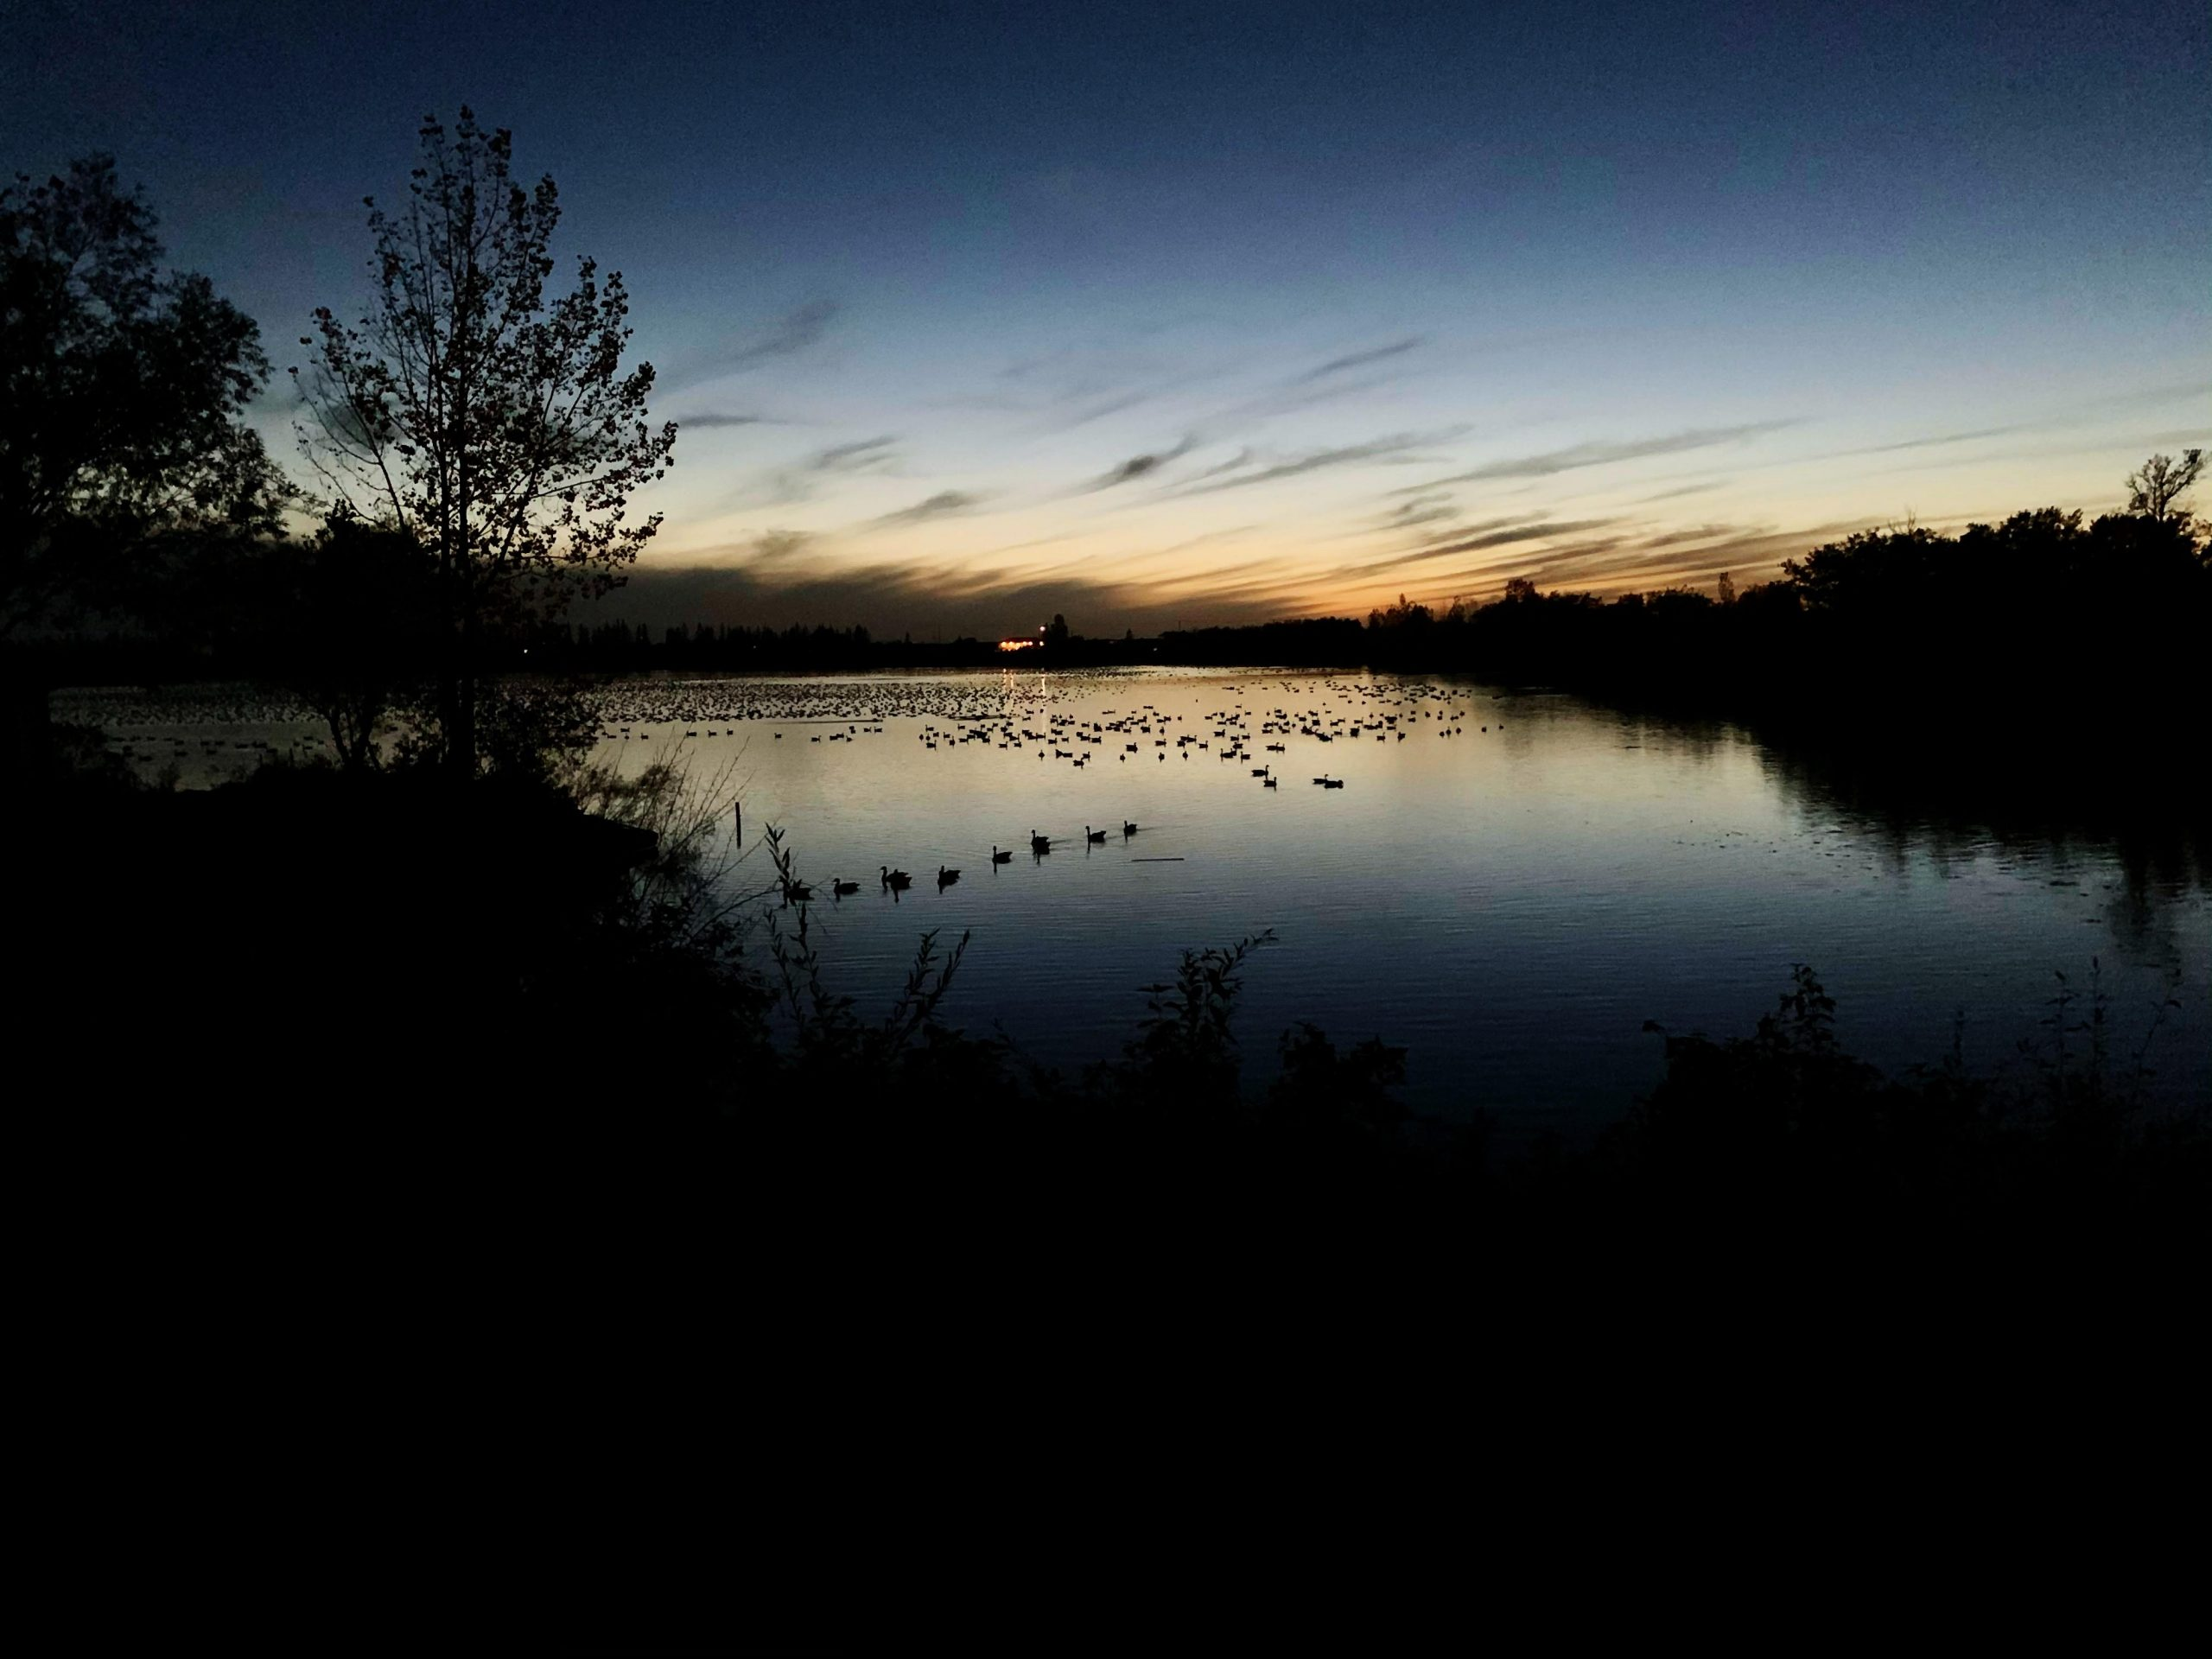 The sky and water are deep blue and black, with whisps of cloud showing in what is left of the sunset. A couple dozen geese sit on the lake.